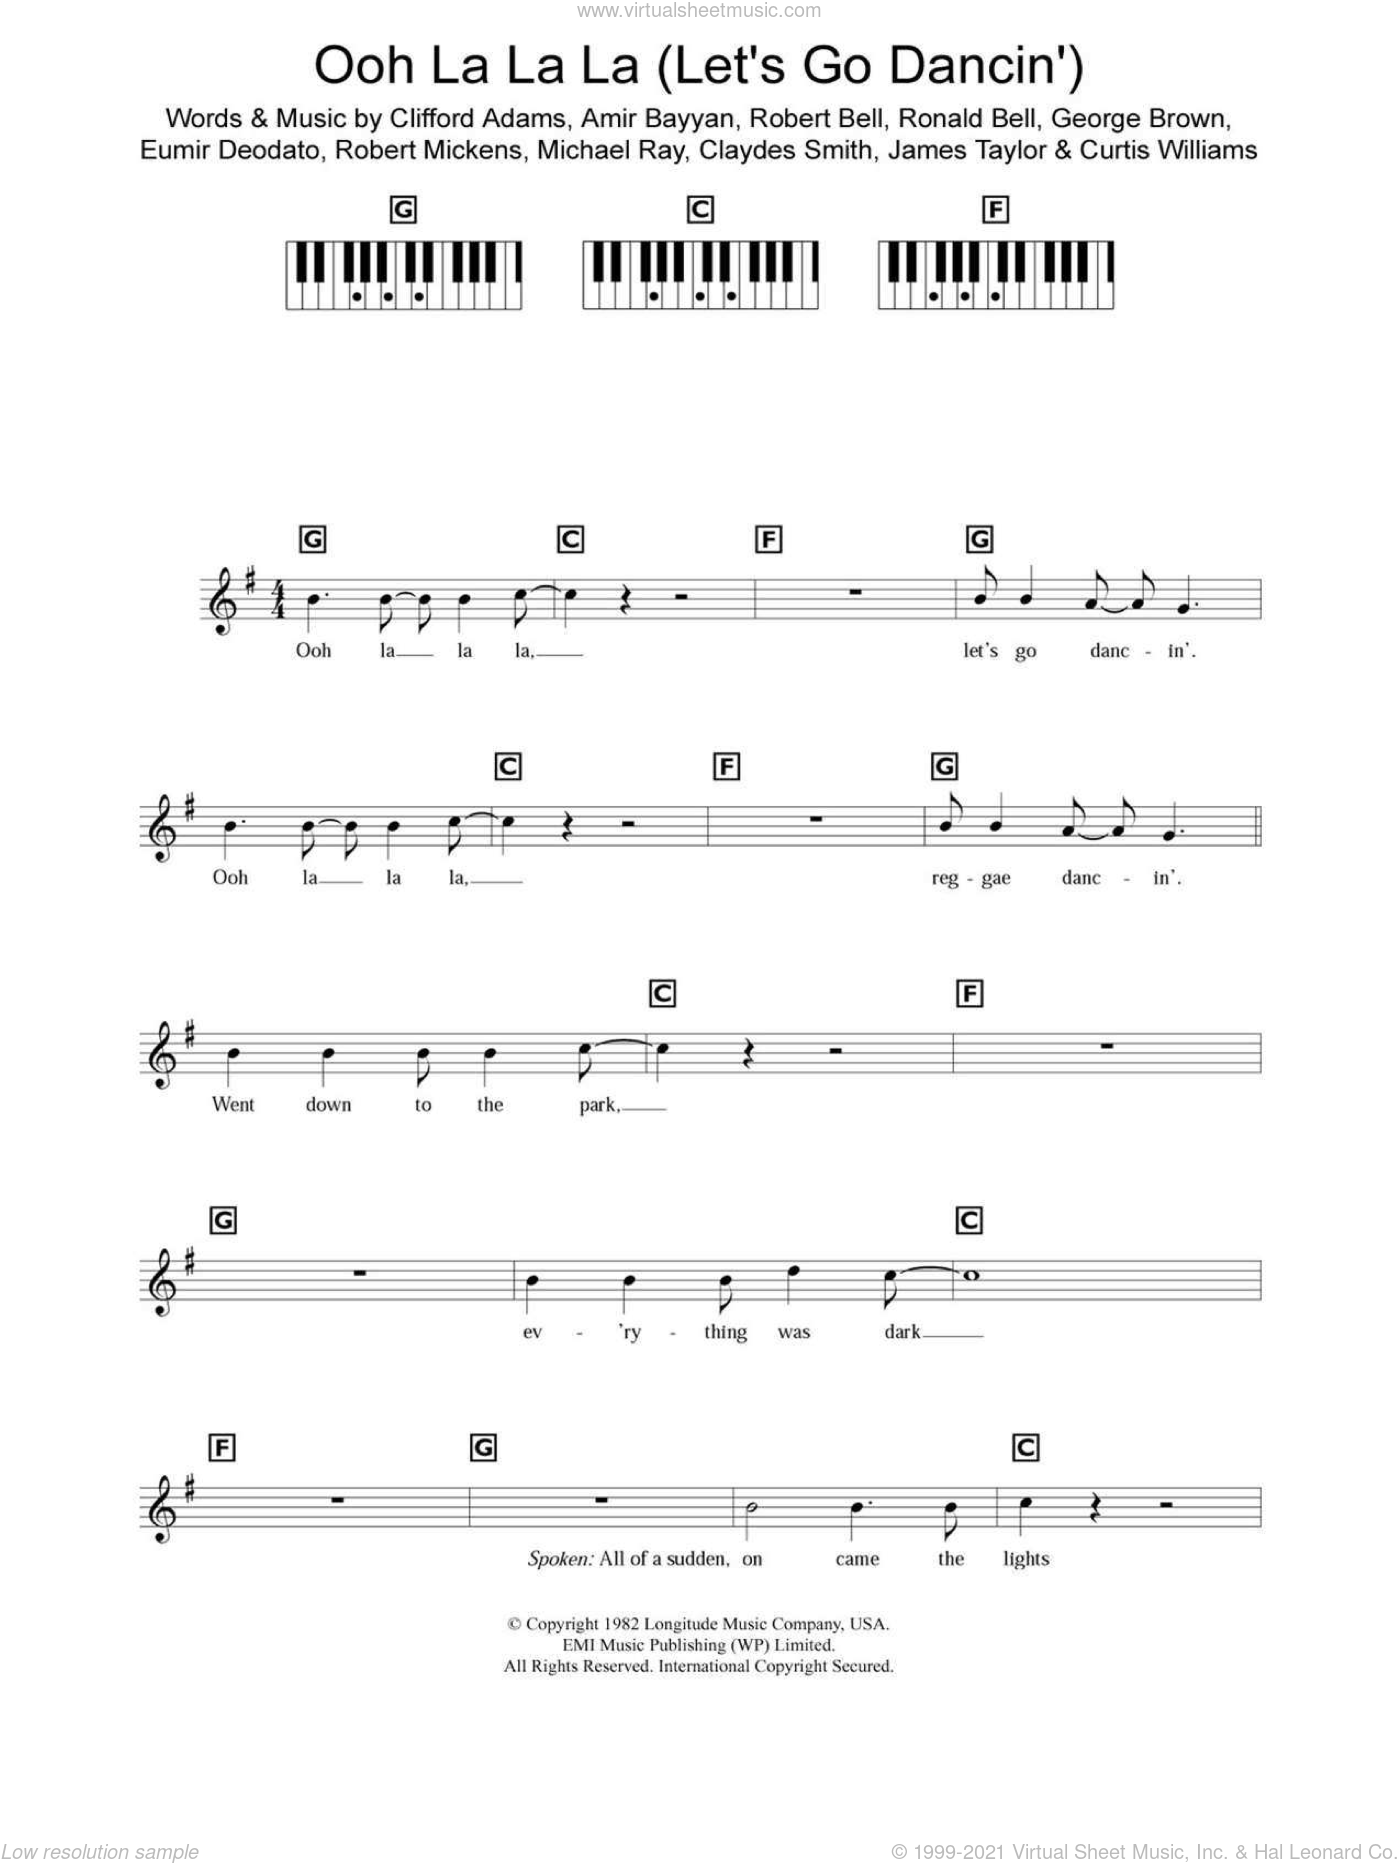 Ooh La La La (Let's Go Dancin') sheet music for piano solo (chords, lyrics, melody) by Kool And The Gang, Amir Bayyan, Claydes Smith, Clifford Adams, Curtis Williams, Eumir Deodato, George Brown, James Taylor, Michael Ray, Robert Bell, Robert Mickens and Ronald Bell, intermediate piano (chords, lyrics, melody). Score Image Preview.